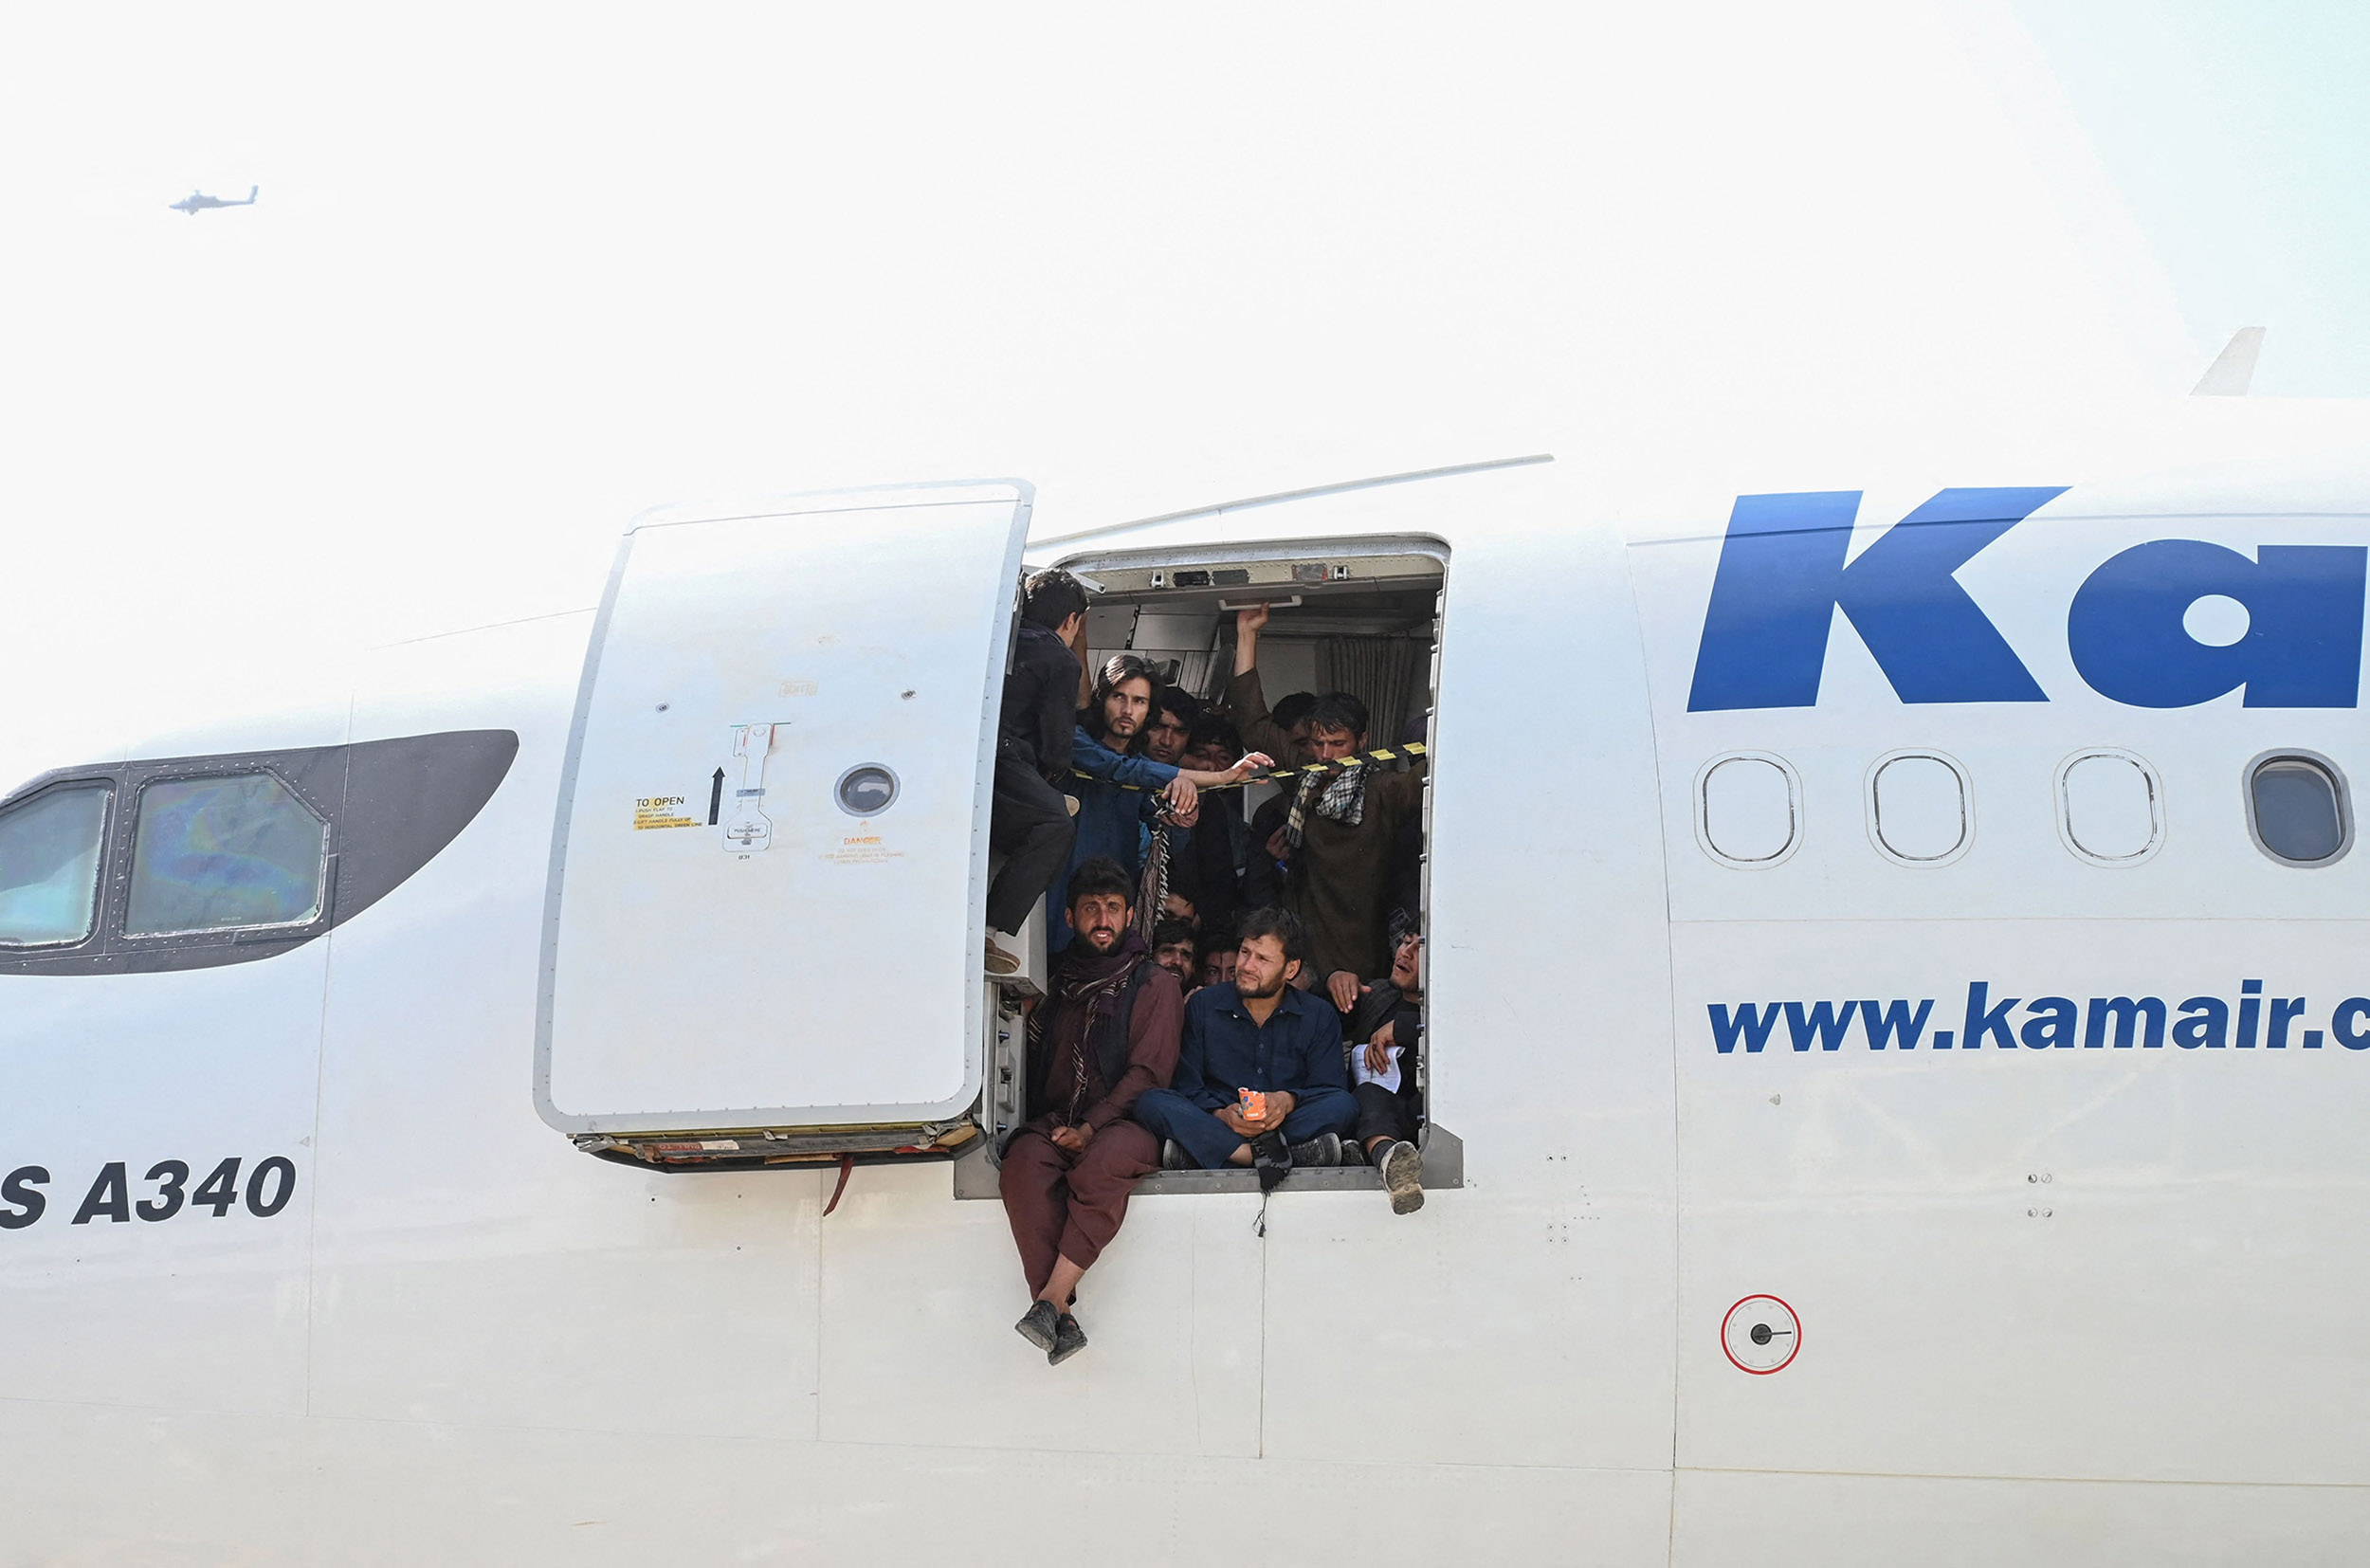 Videos show desperation at Kabul airport as Afghans crowd planes, cling to jets to escape